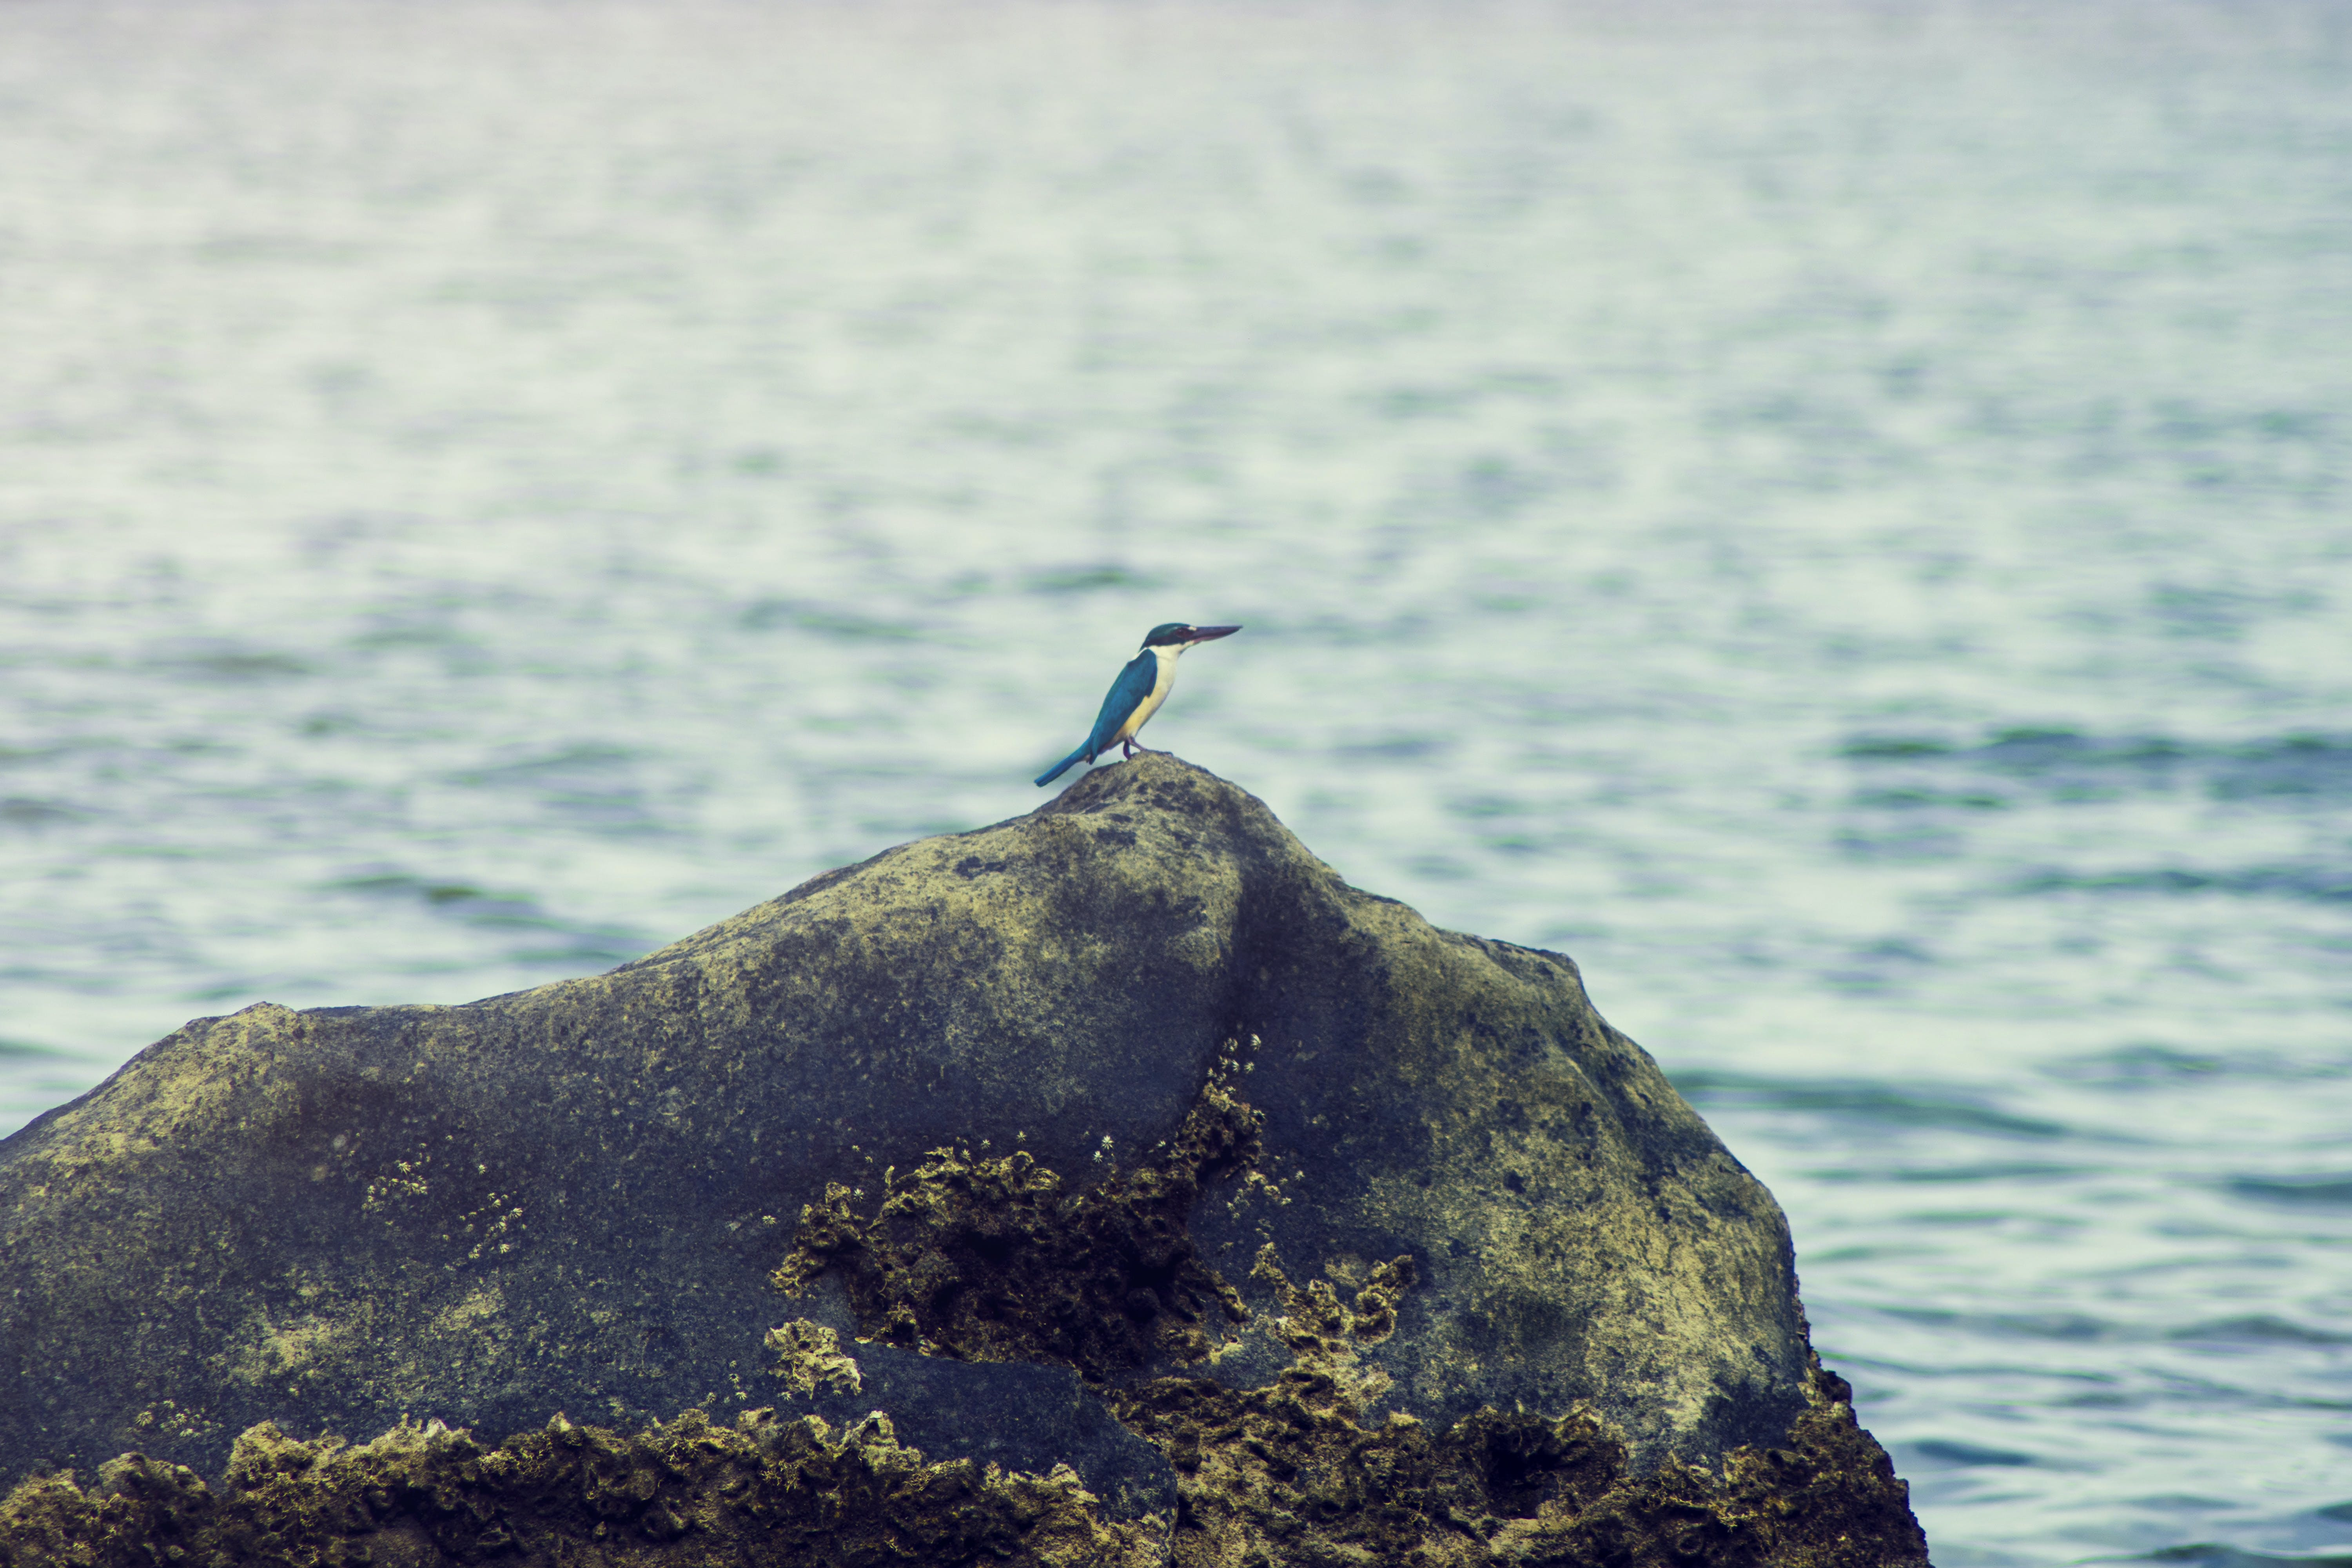 King Fisher on the Rock Near Body of Water